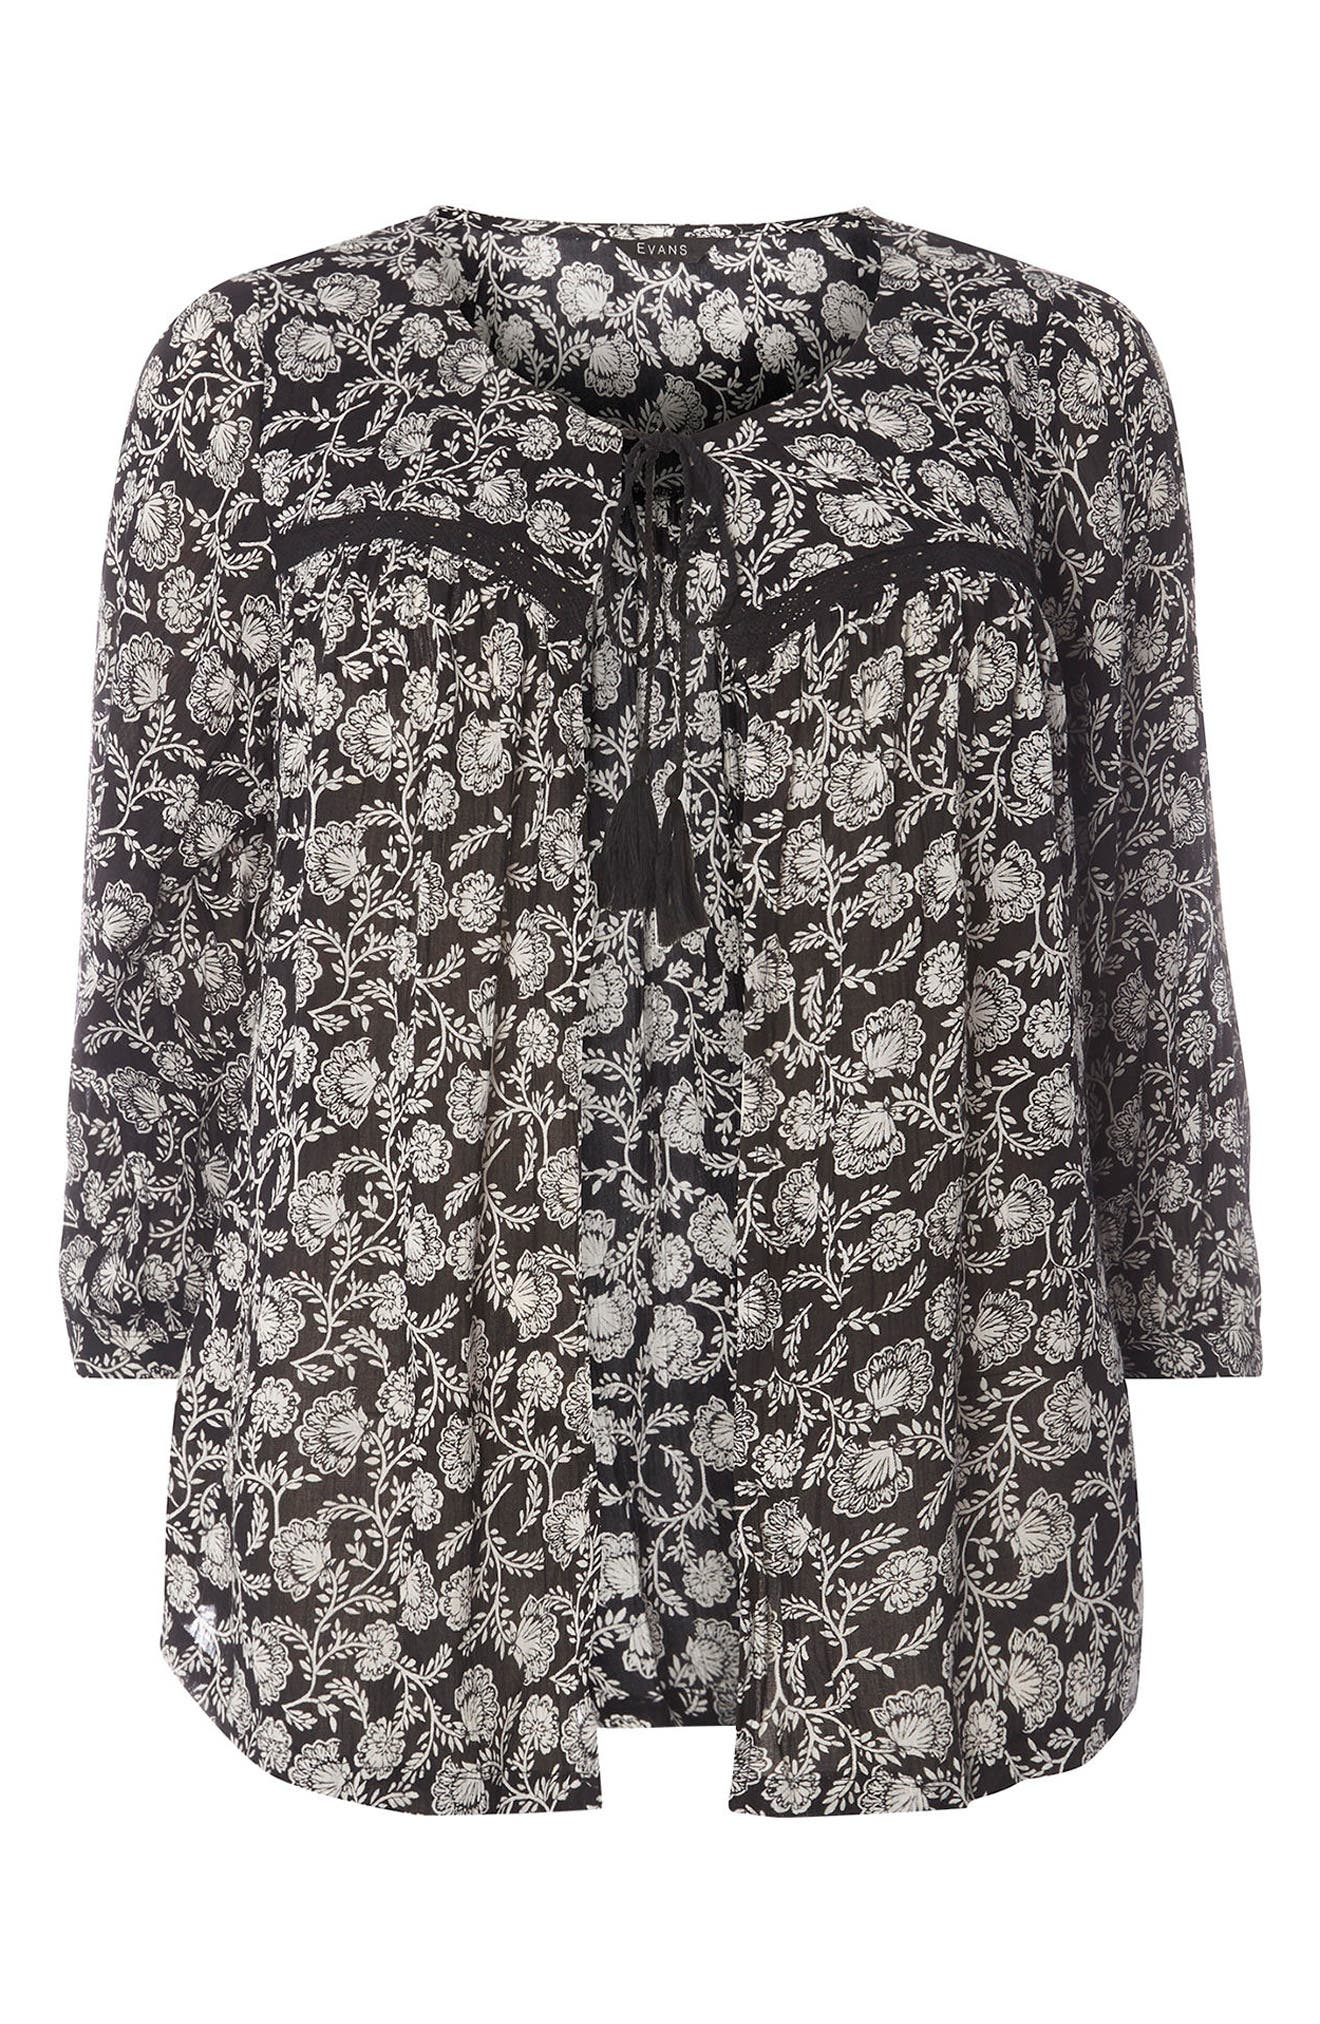 Alternate Image 5  - Evans Floral Print Cover-Up (Plus Size)